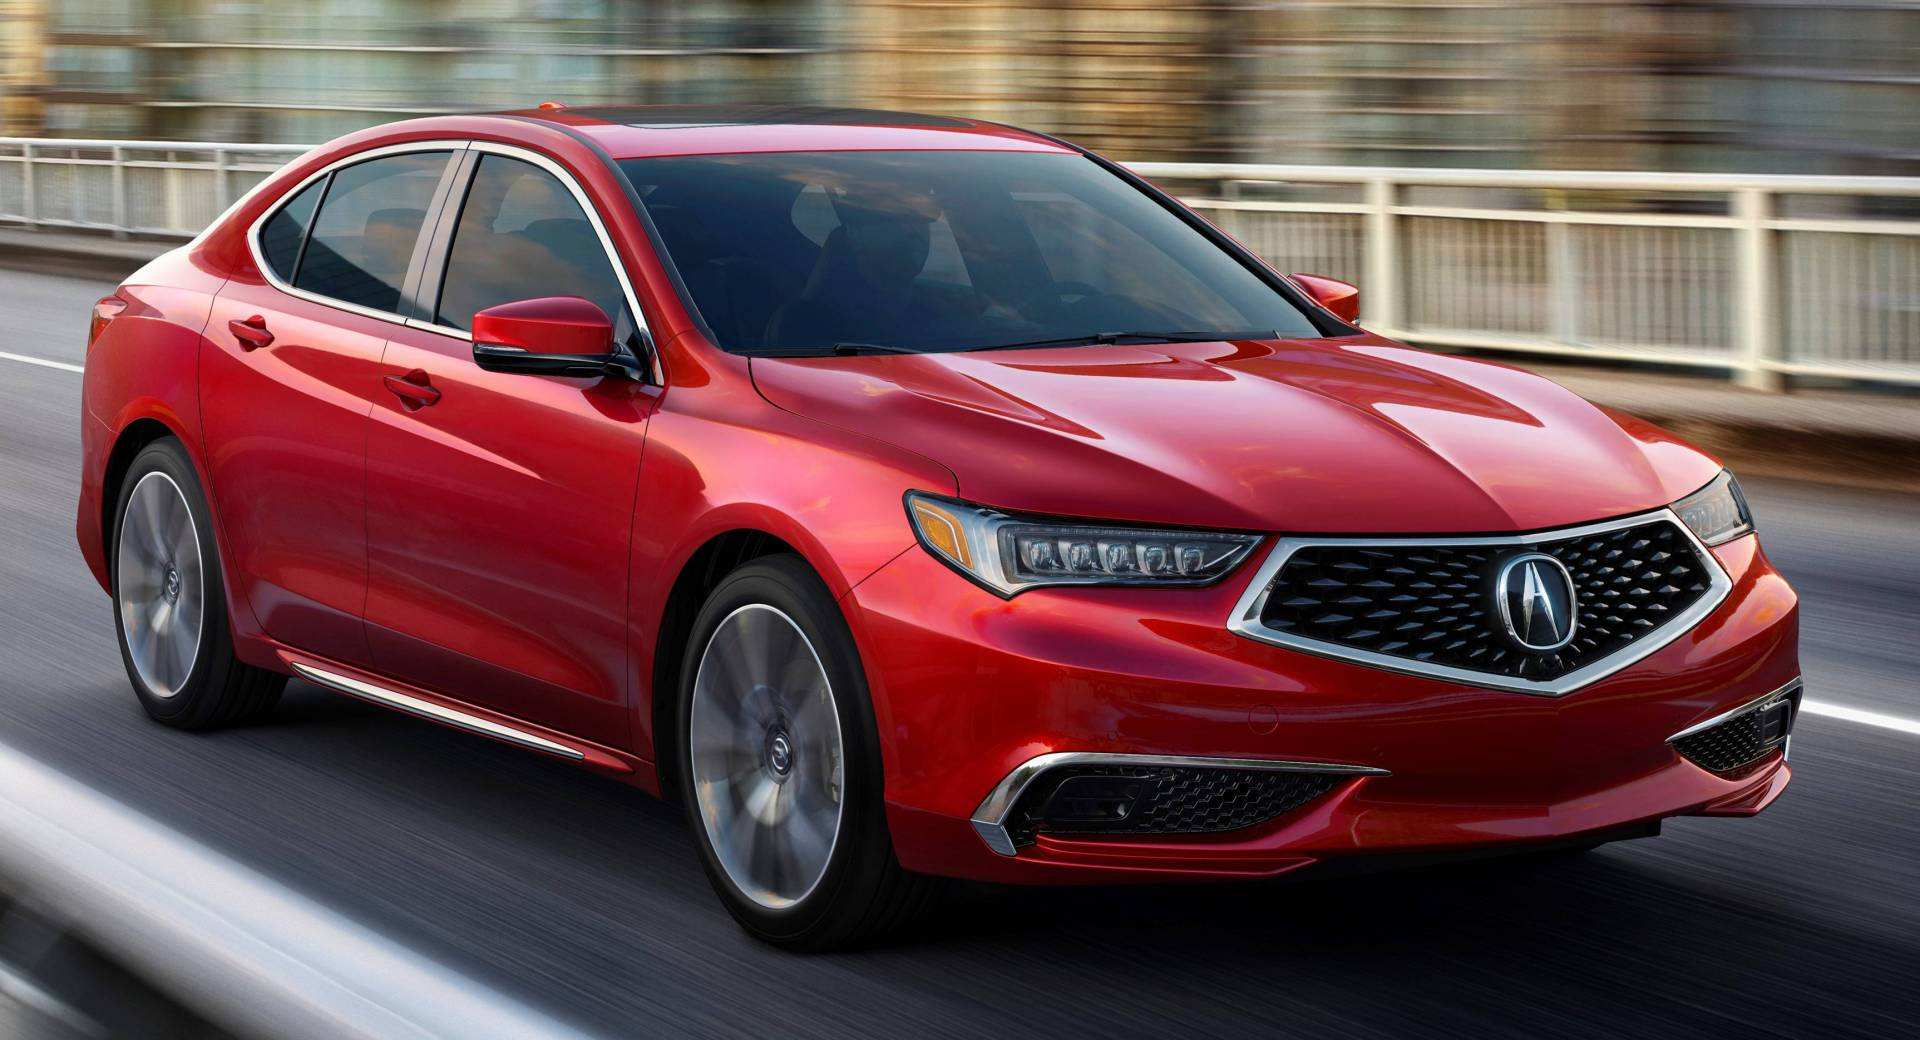 62 The Best Acura Tlx 2020 Release Date Redesign